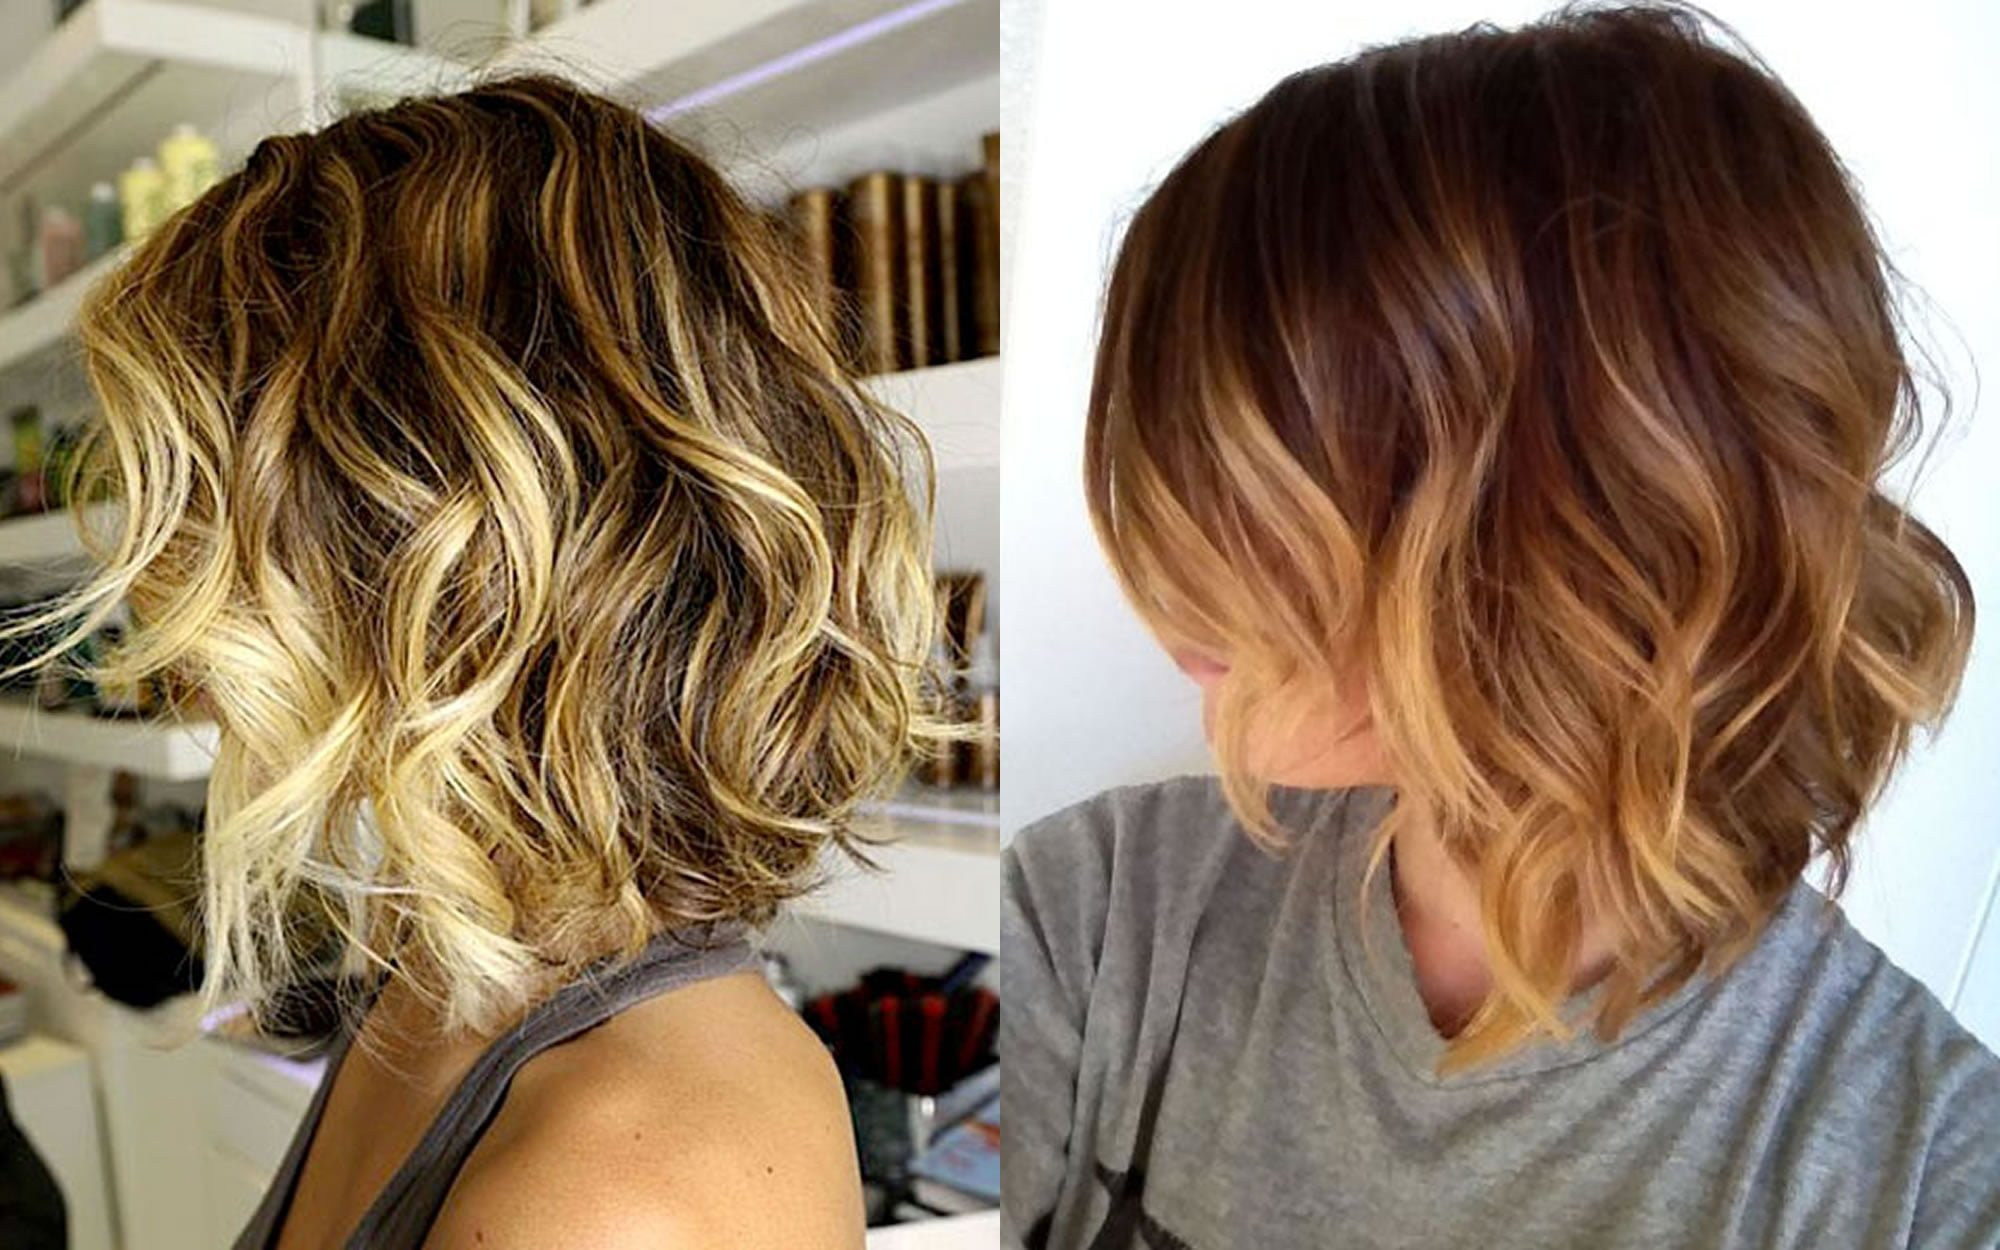 Short ombre hairstyles hair color 2018 - Hair Colors